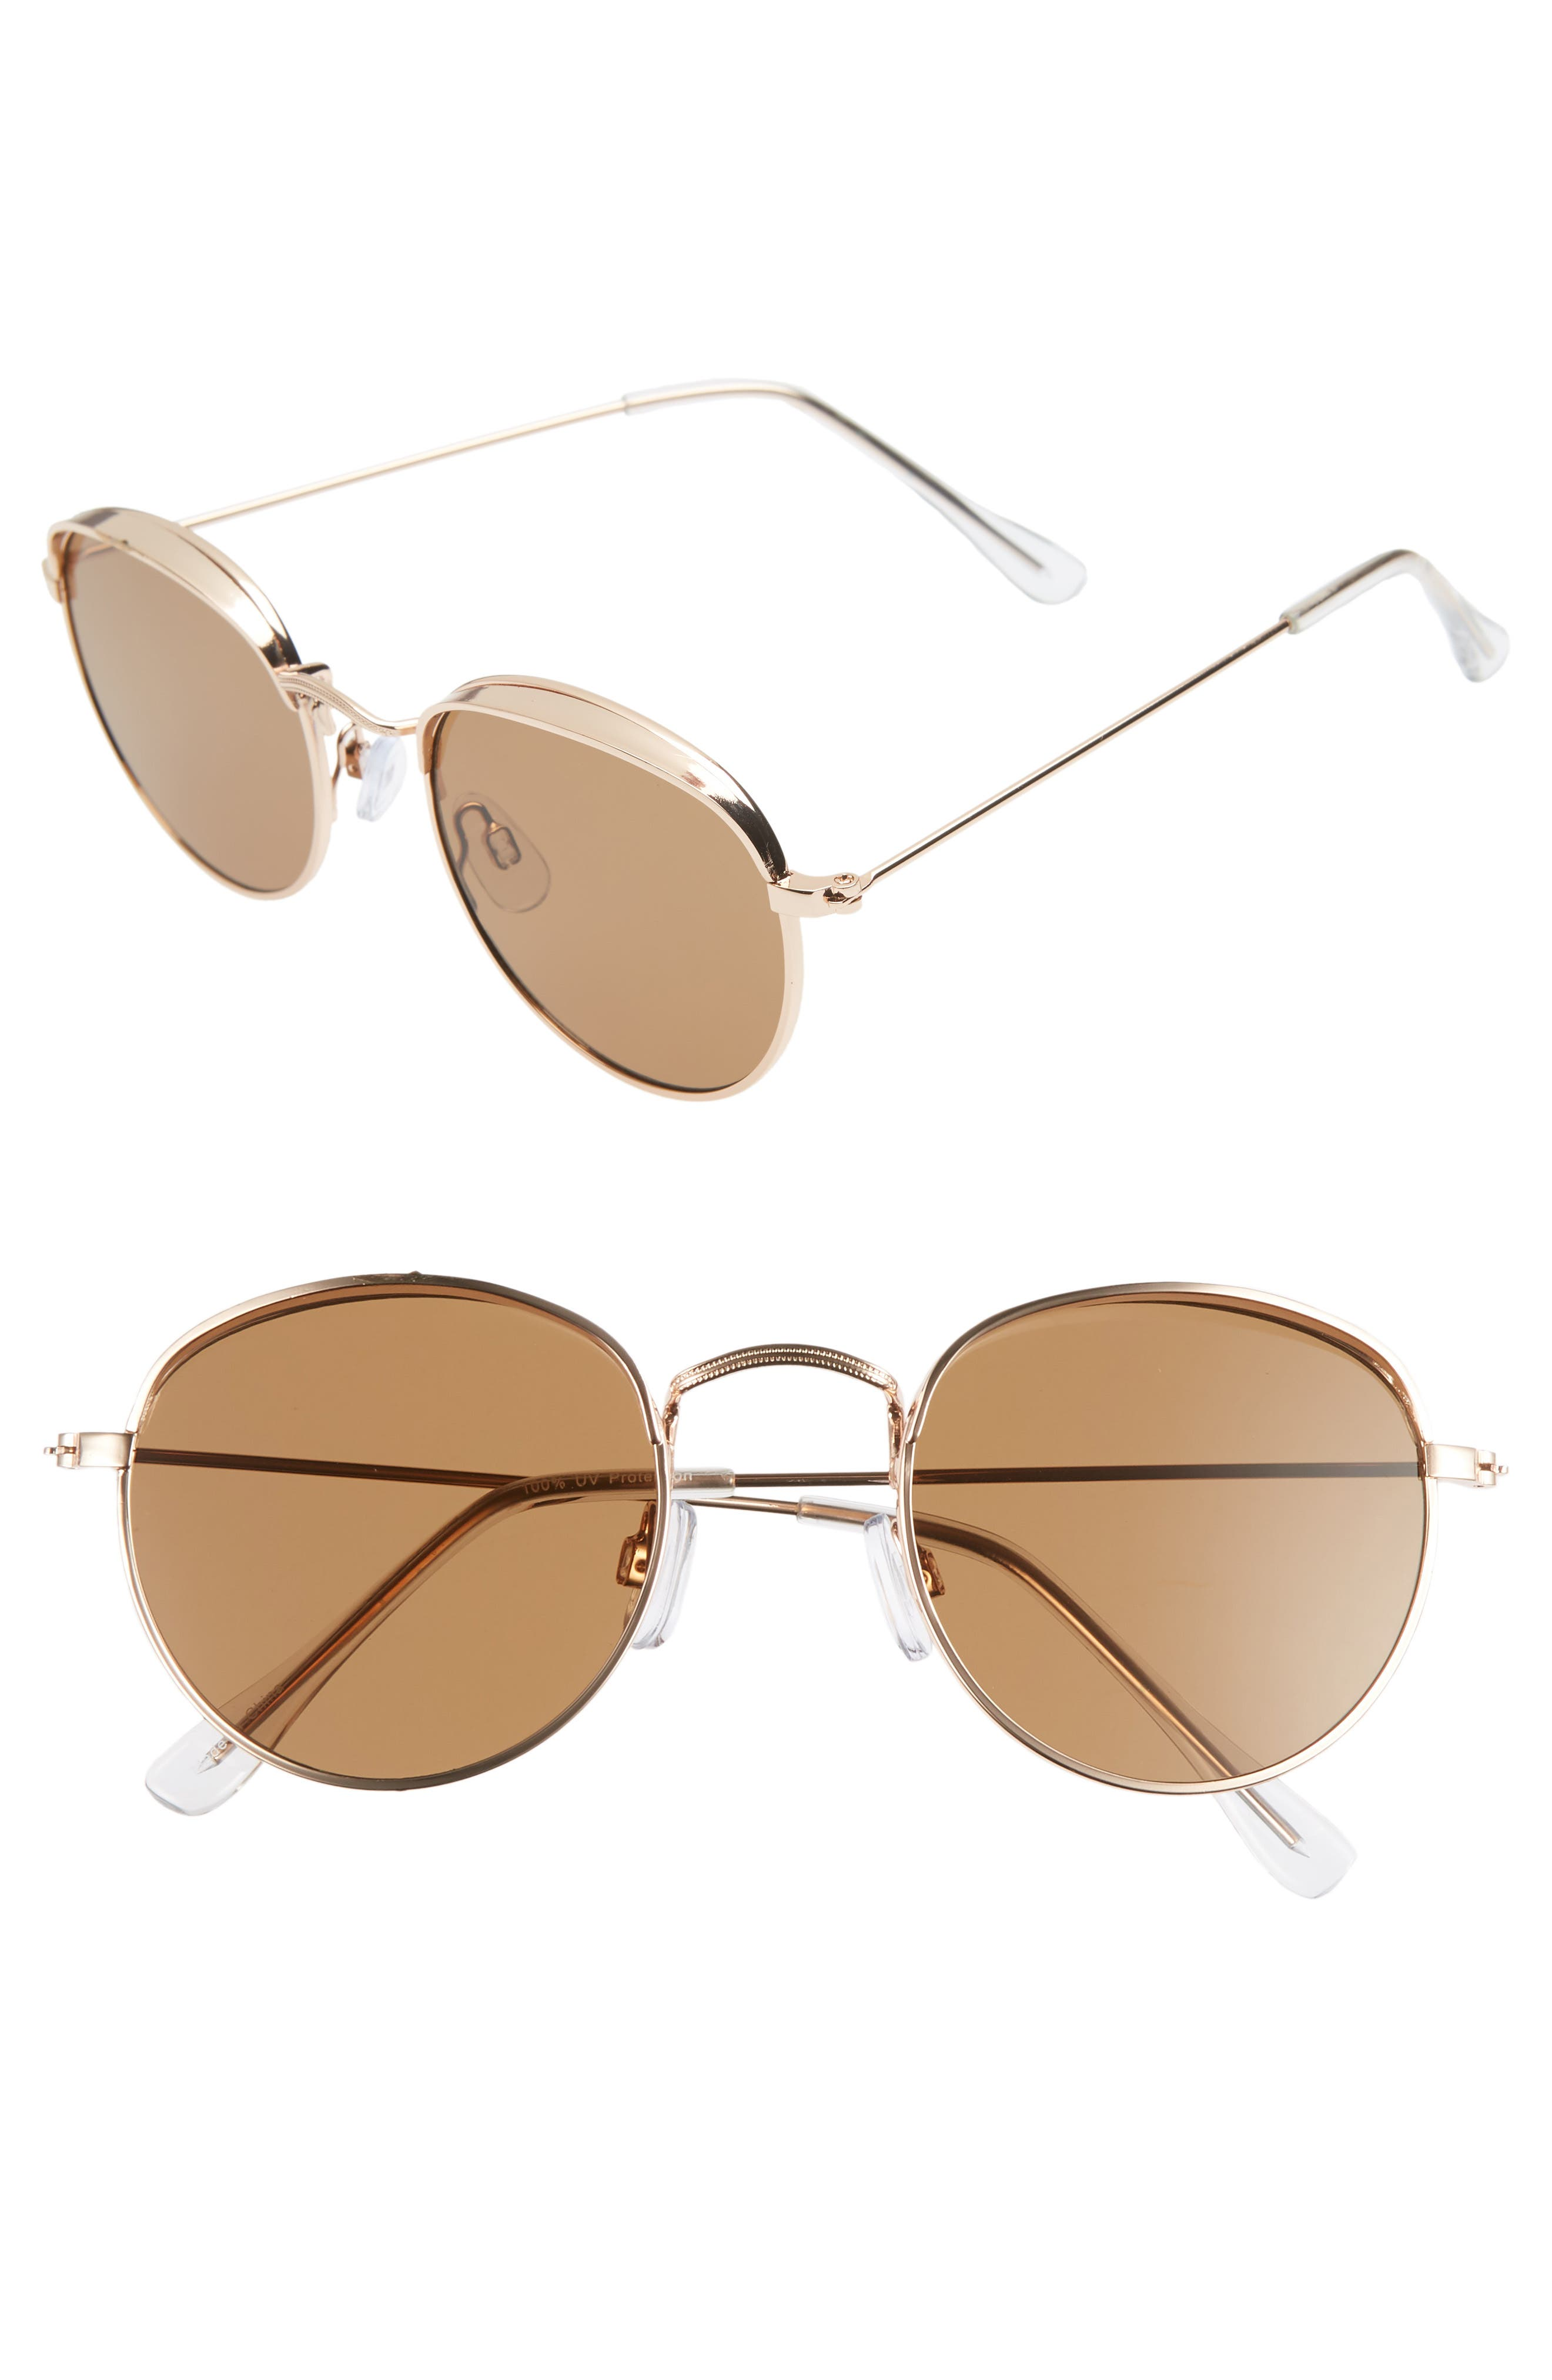 50mm Round Sunglasses,                             Main thumbnail 1, color,                             GOLD/ BROWN